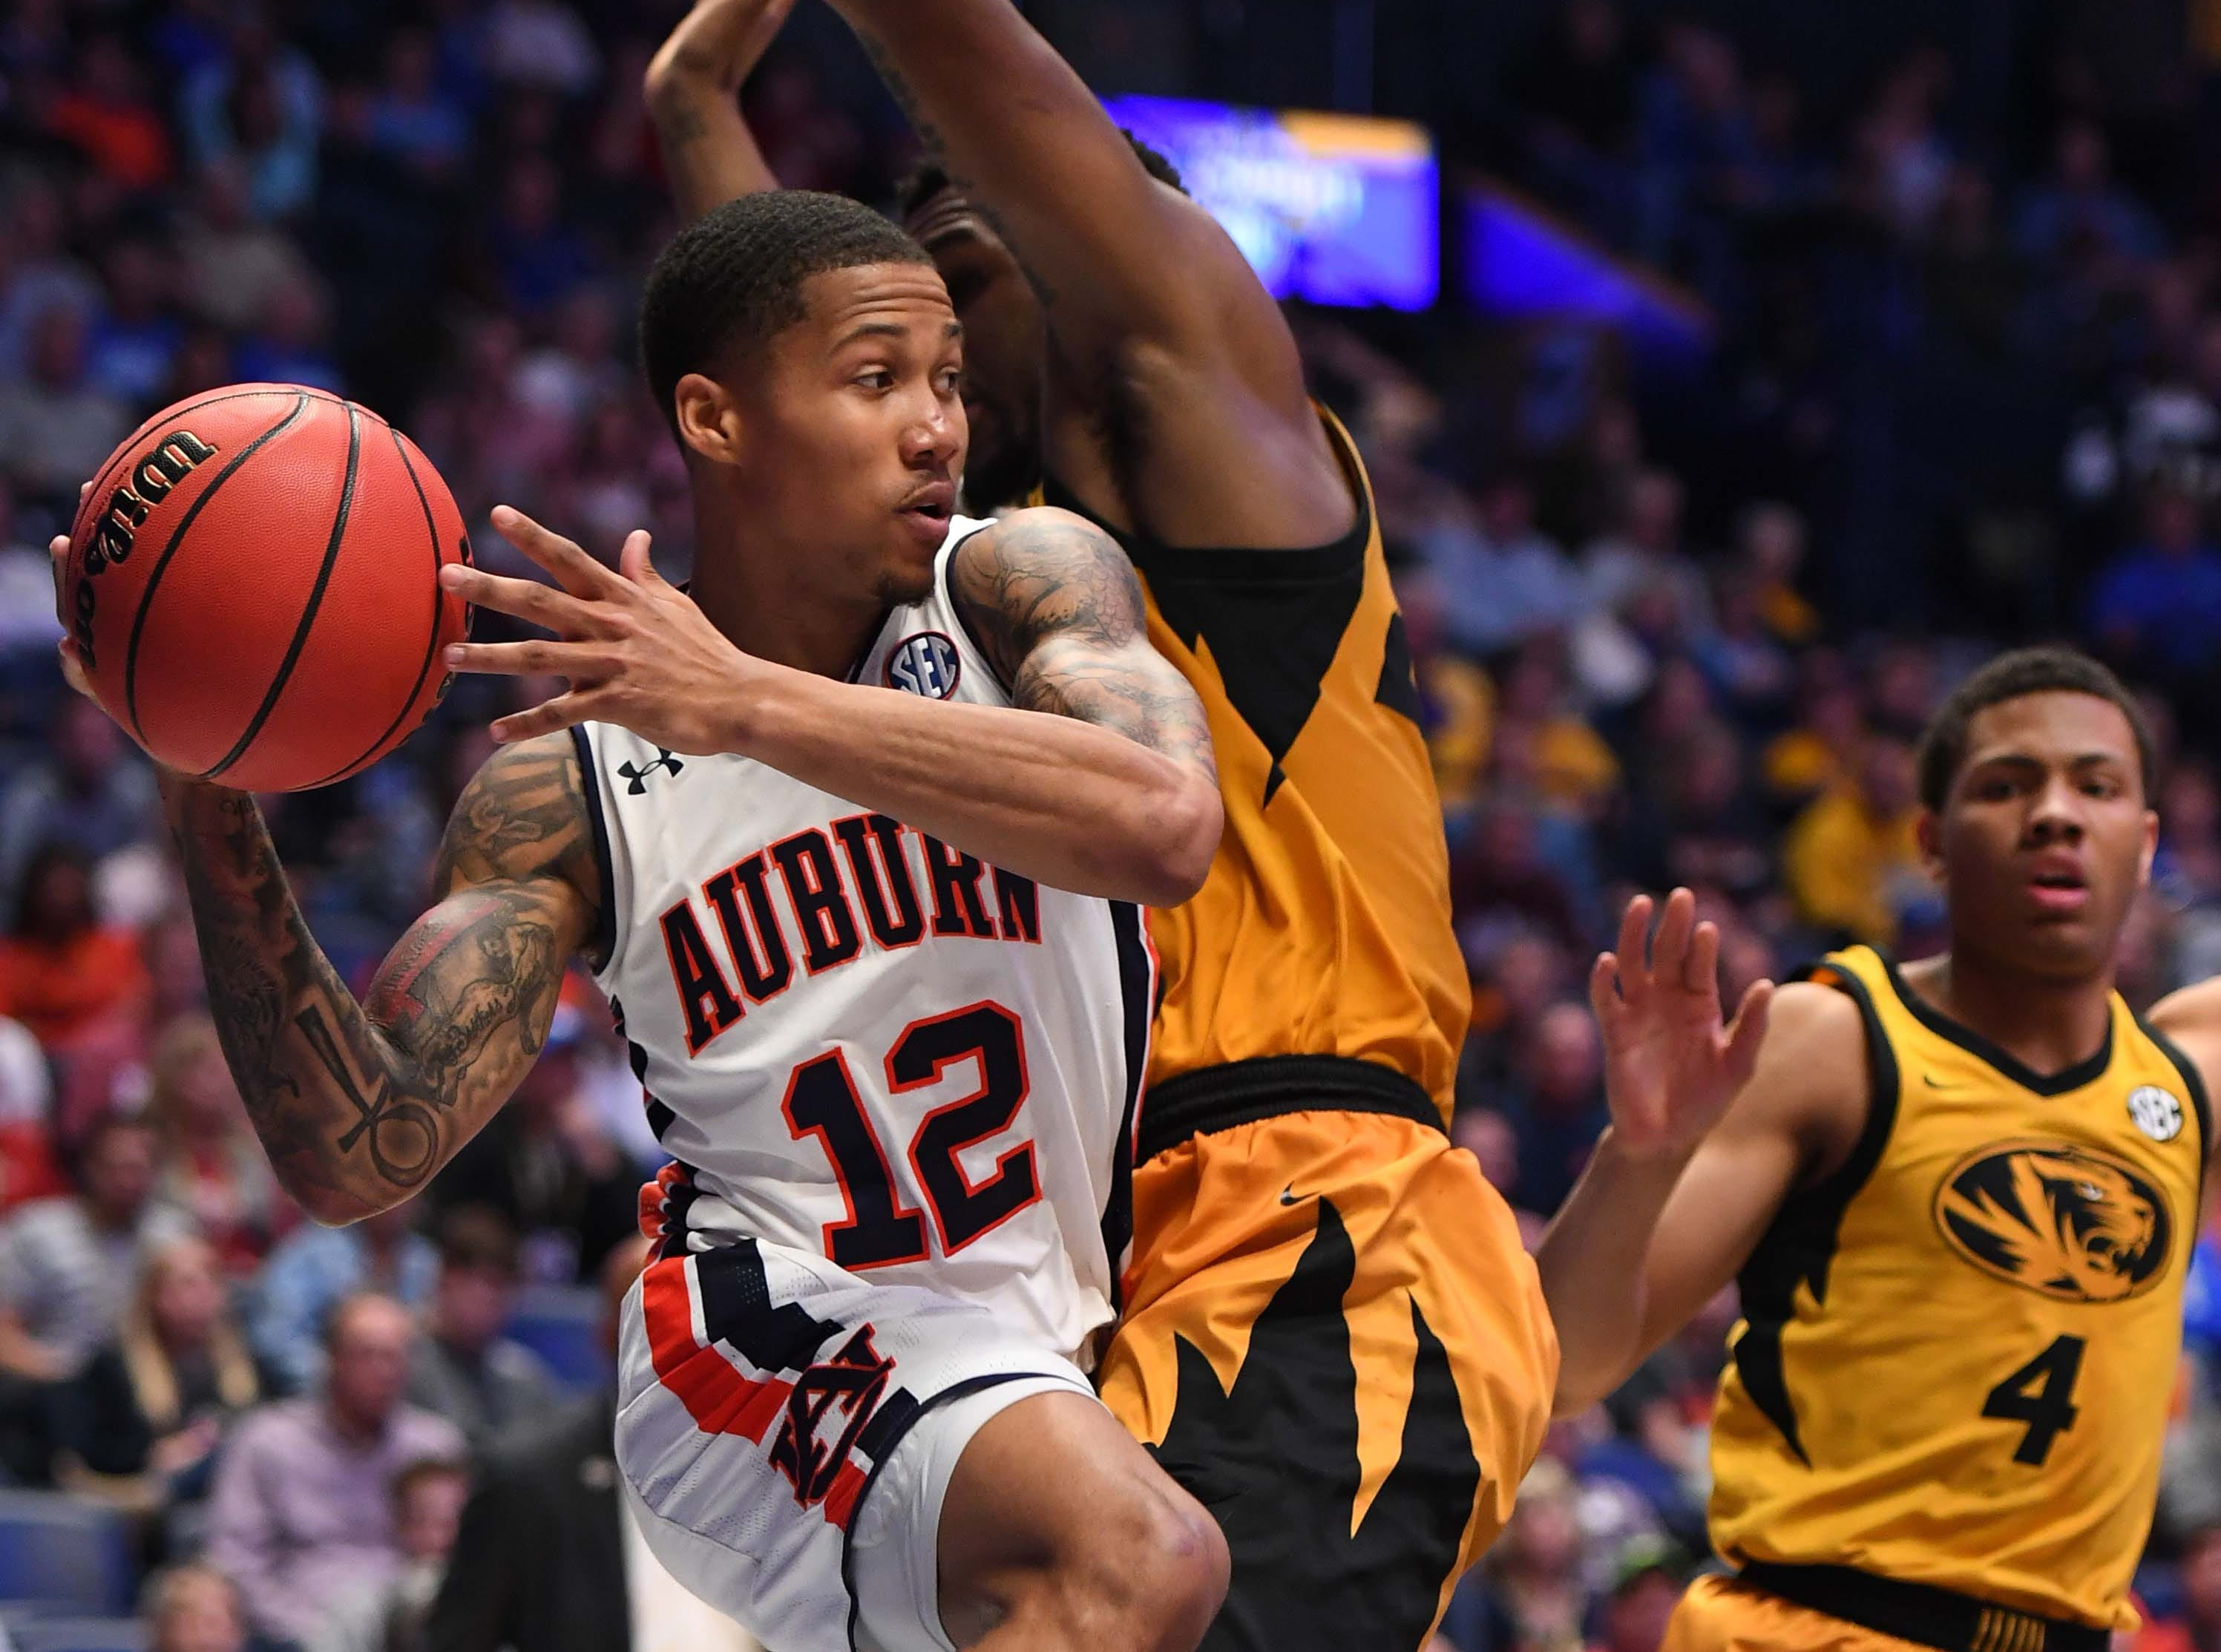 Mar 14, 2019; Nashville, TN, USA; Auburn Tigers guard J'Von McCormick (12) drives baseline and looks to pass against the Missouri Tigers during the first half of the SEC conference tournament at Bridgestone Arena. Mandatory Credit: Christopher Hanewinckel-USA TODAY Sports